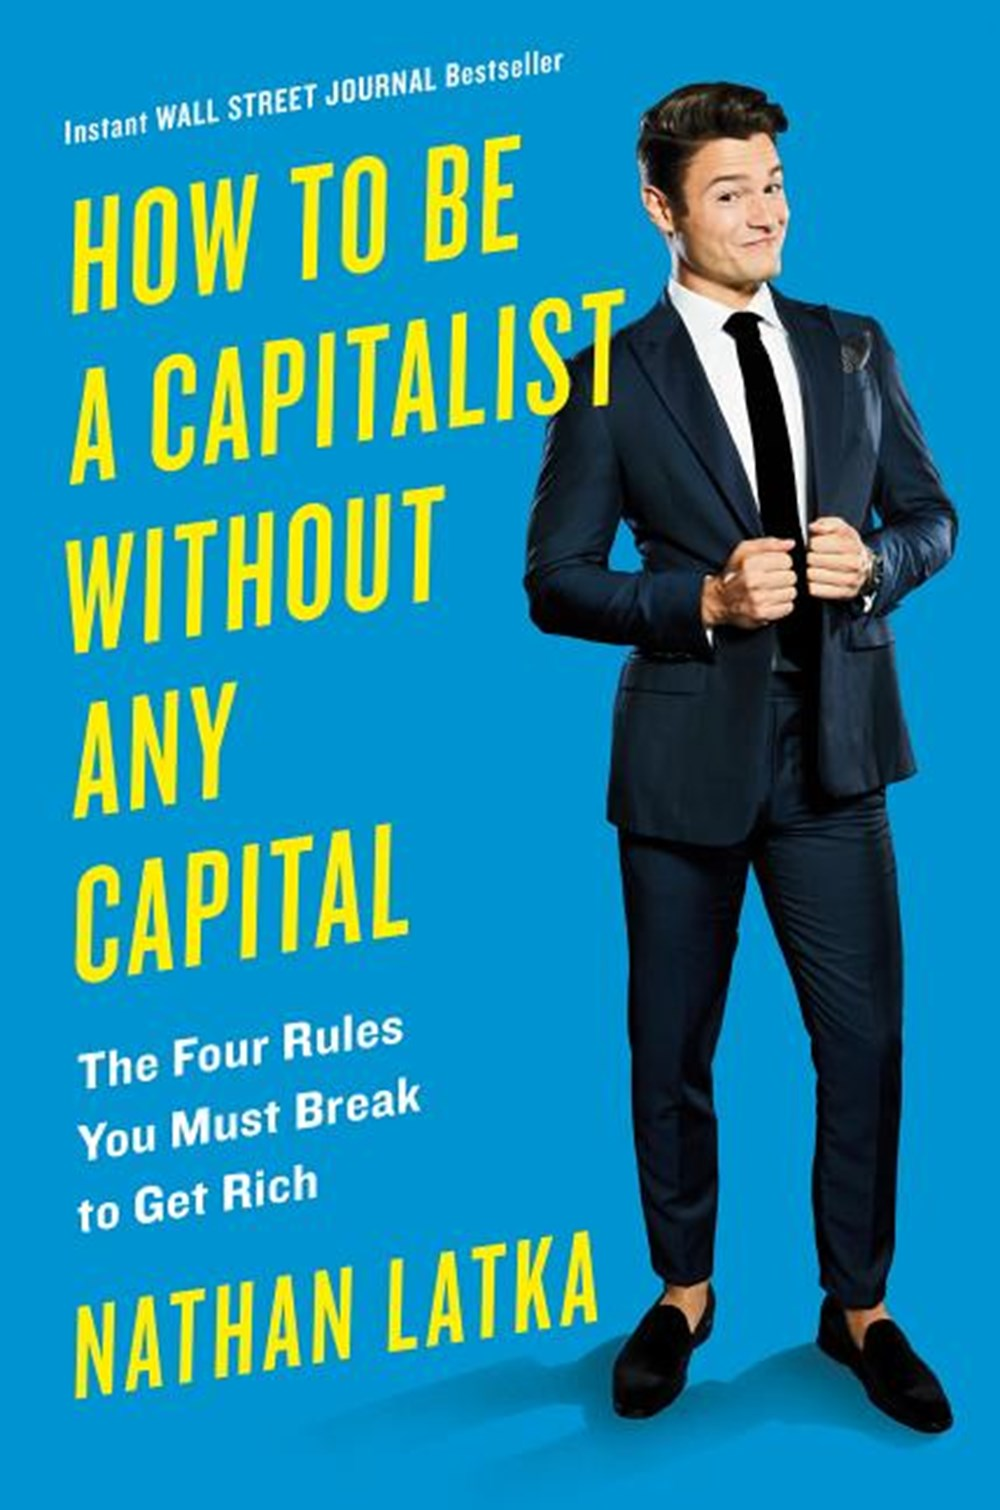 How to Be a Capitalist Without Any Capital The Four Rules You Must Break to Get Rich